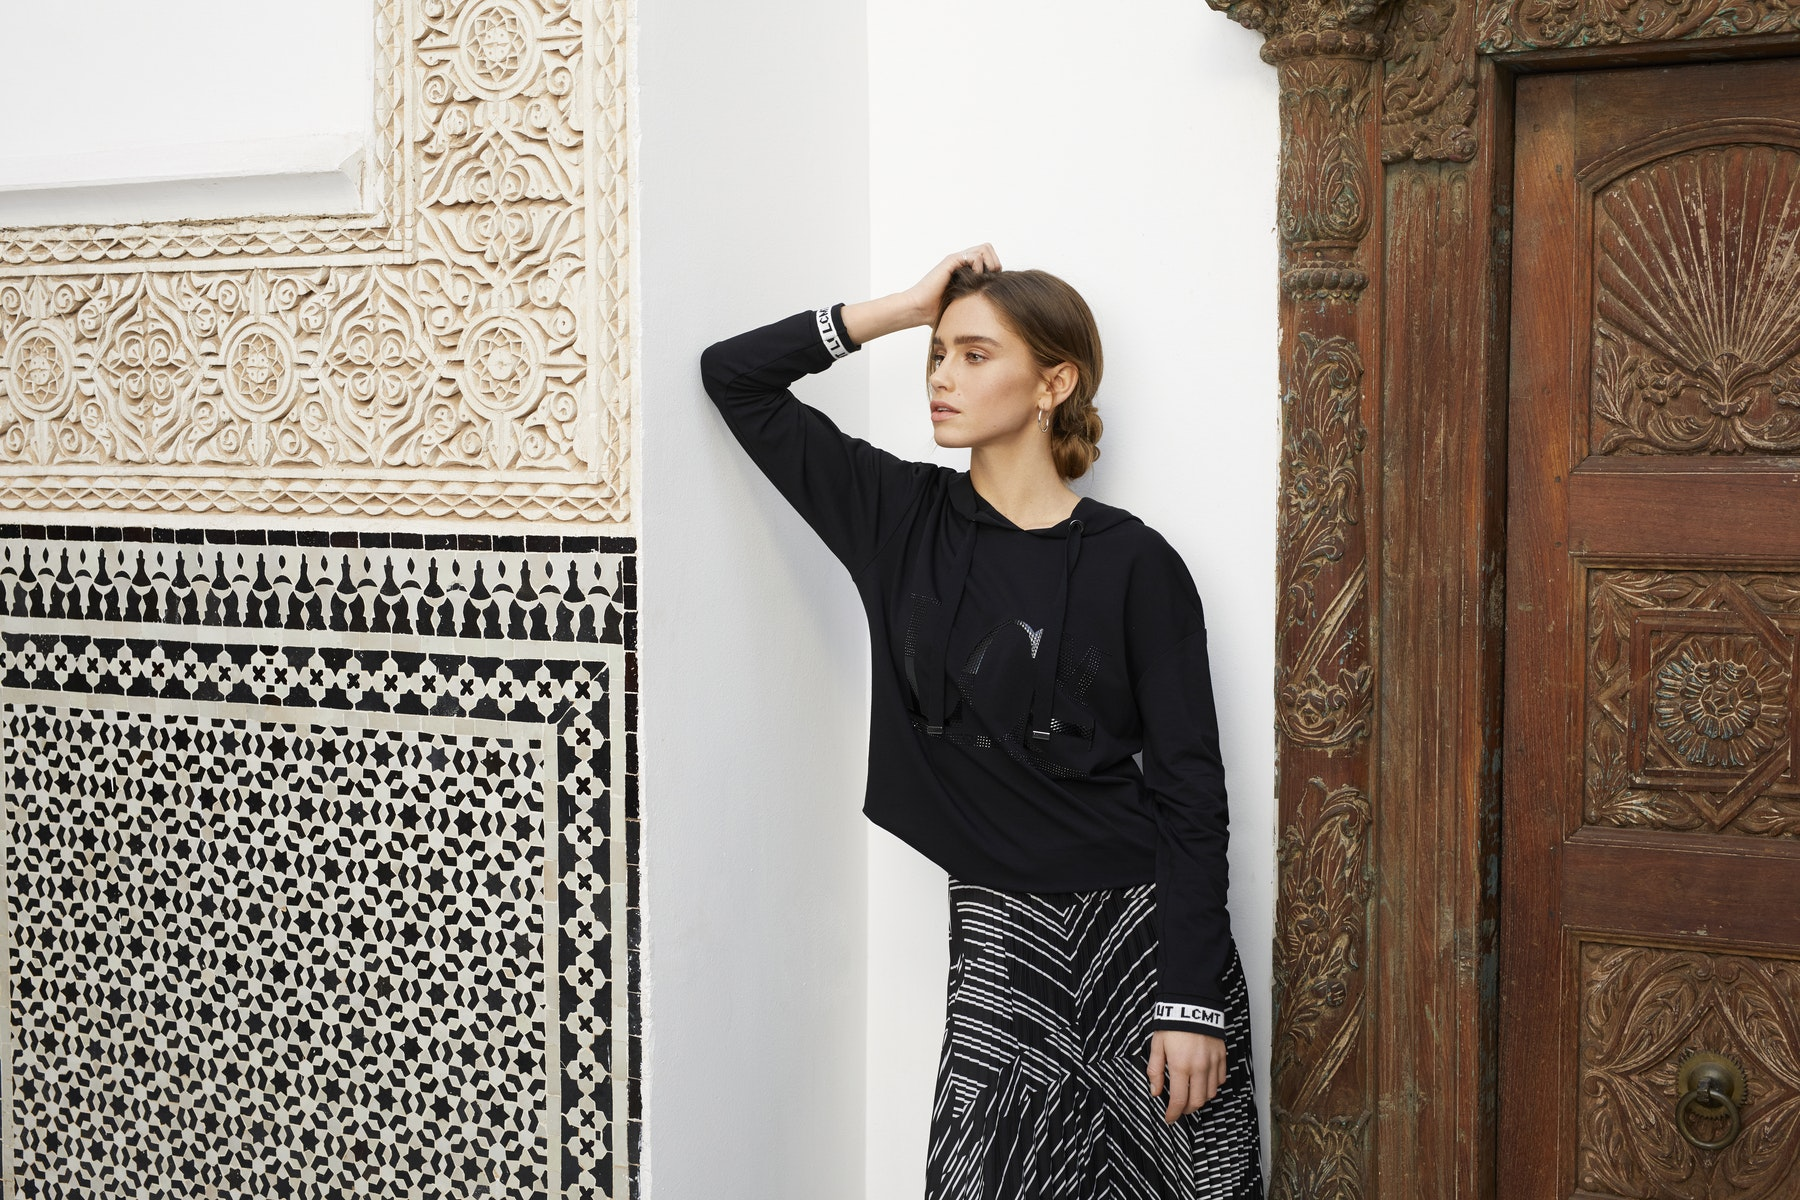 LeComte_fall_winter_2020_large_r_Le_Comte_Marrakesch_Motiv 10_0971